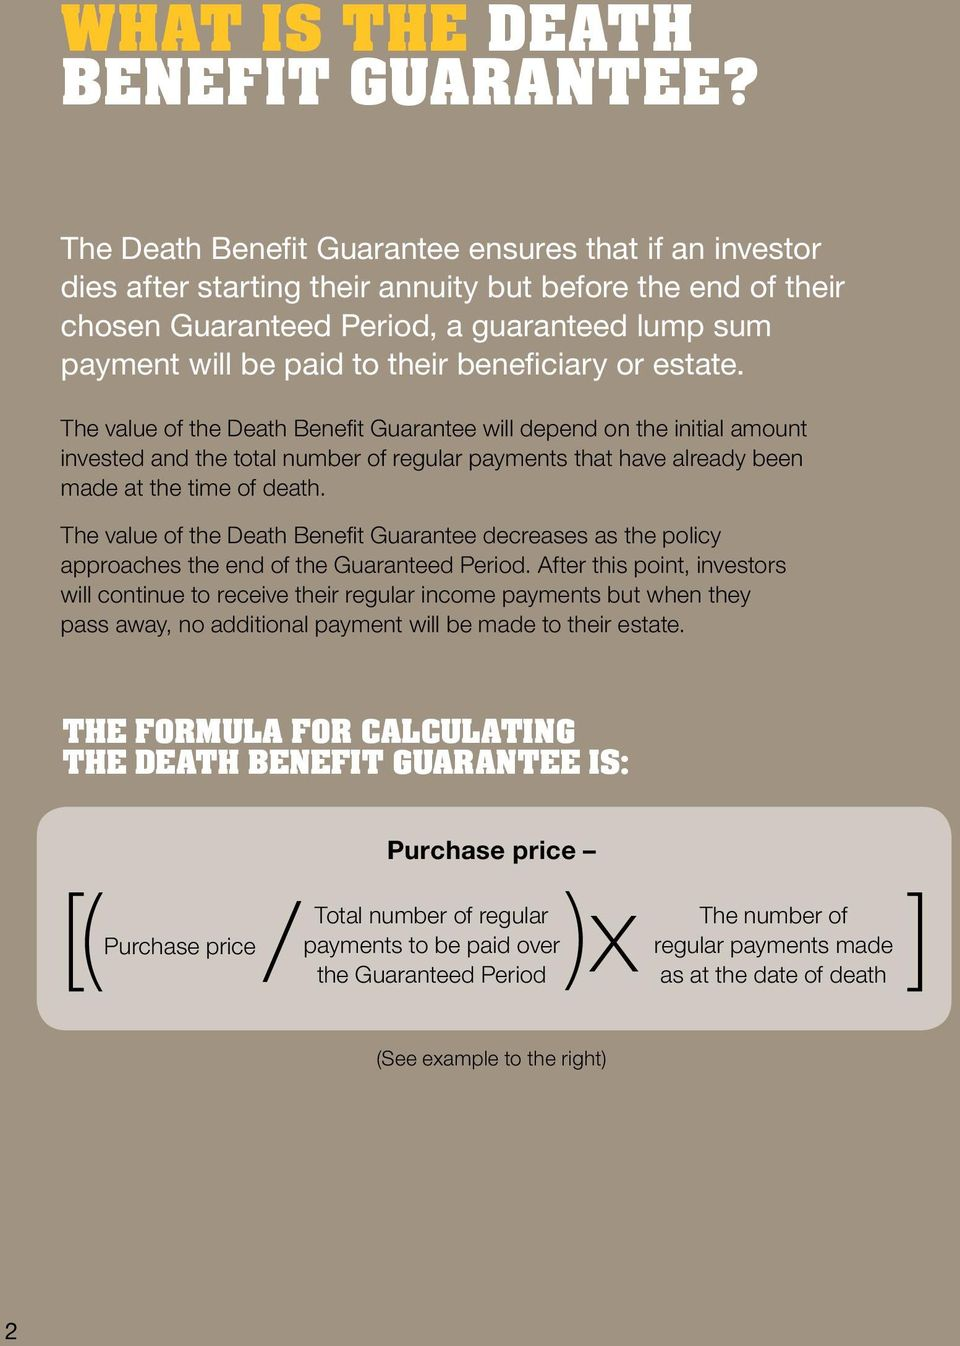 beneficiary or estate. The value of the Death Benefit Guarantee will depend on the initial amount invested and the total number of regular payments that have already been made at the time of death.